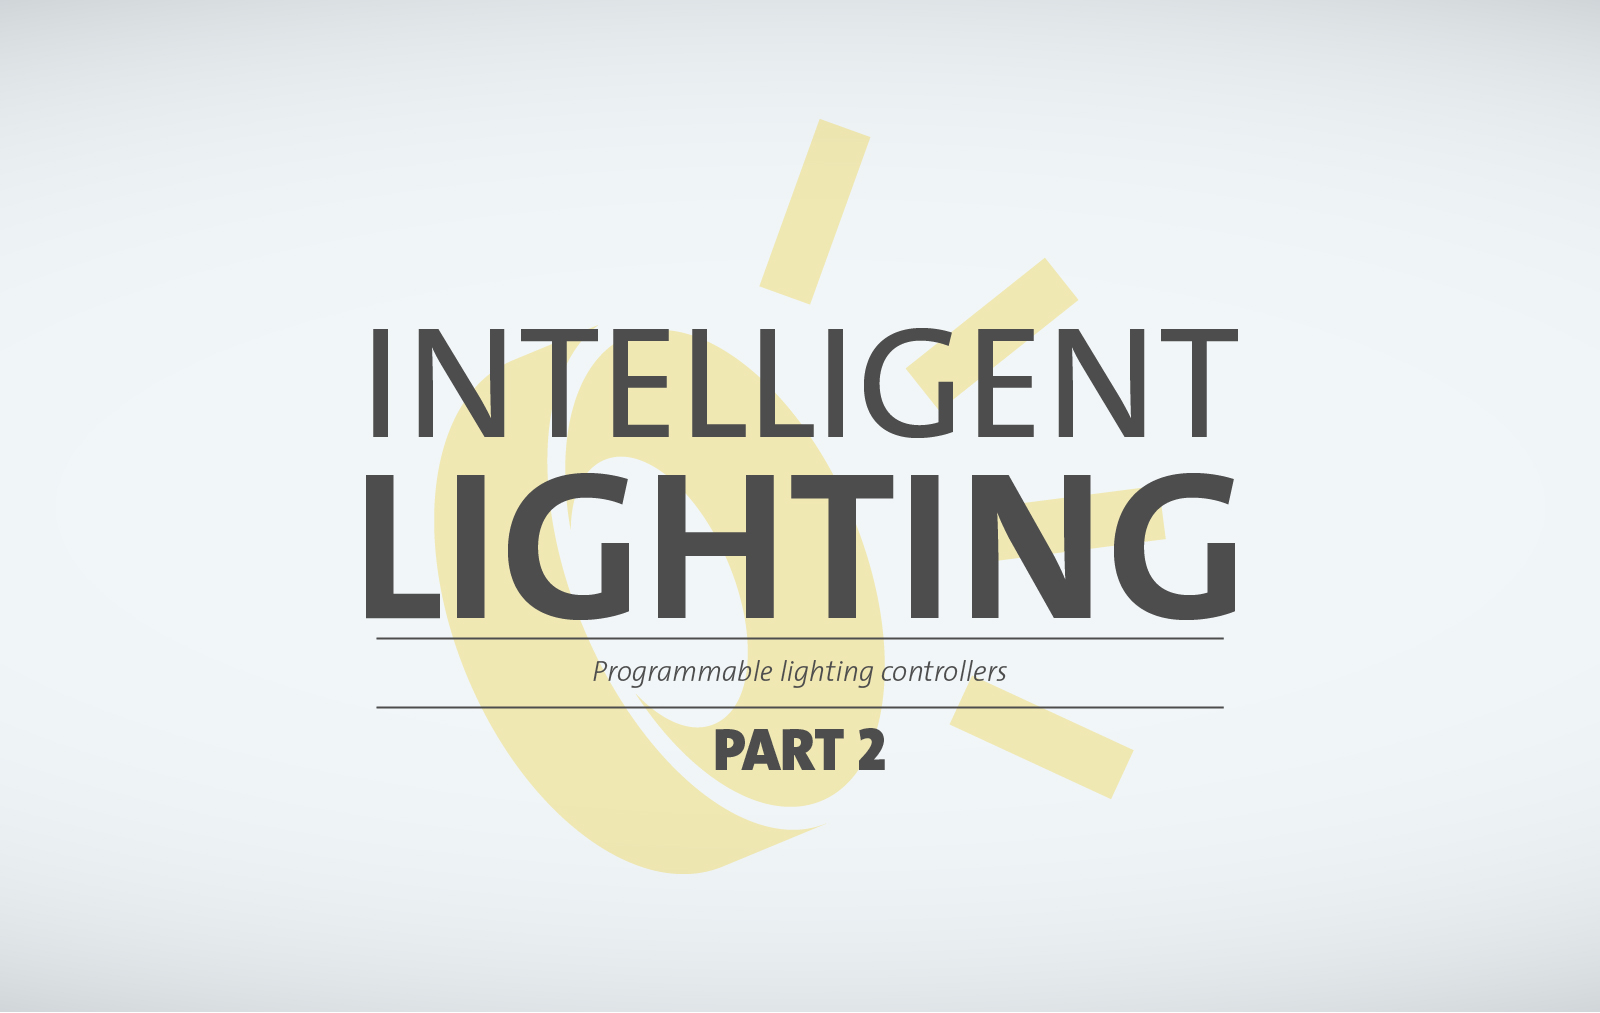 Intelligent Lighting - Part 2 - Lighting Controllers